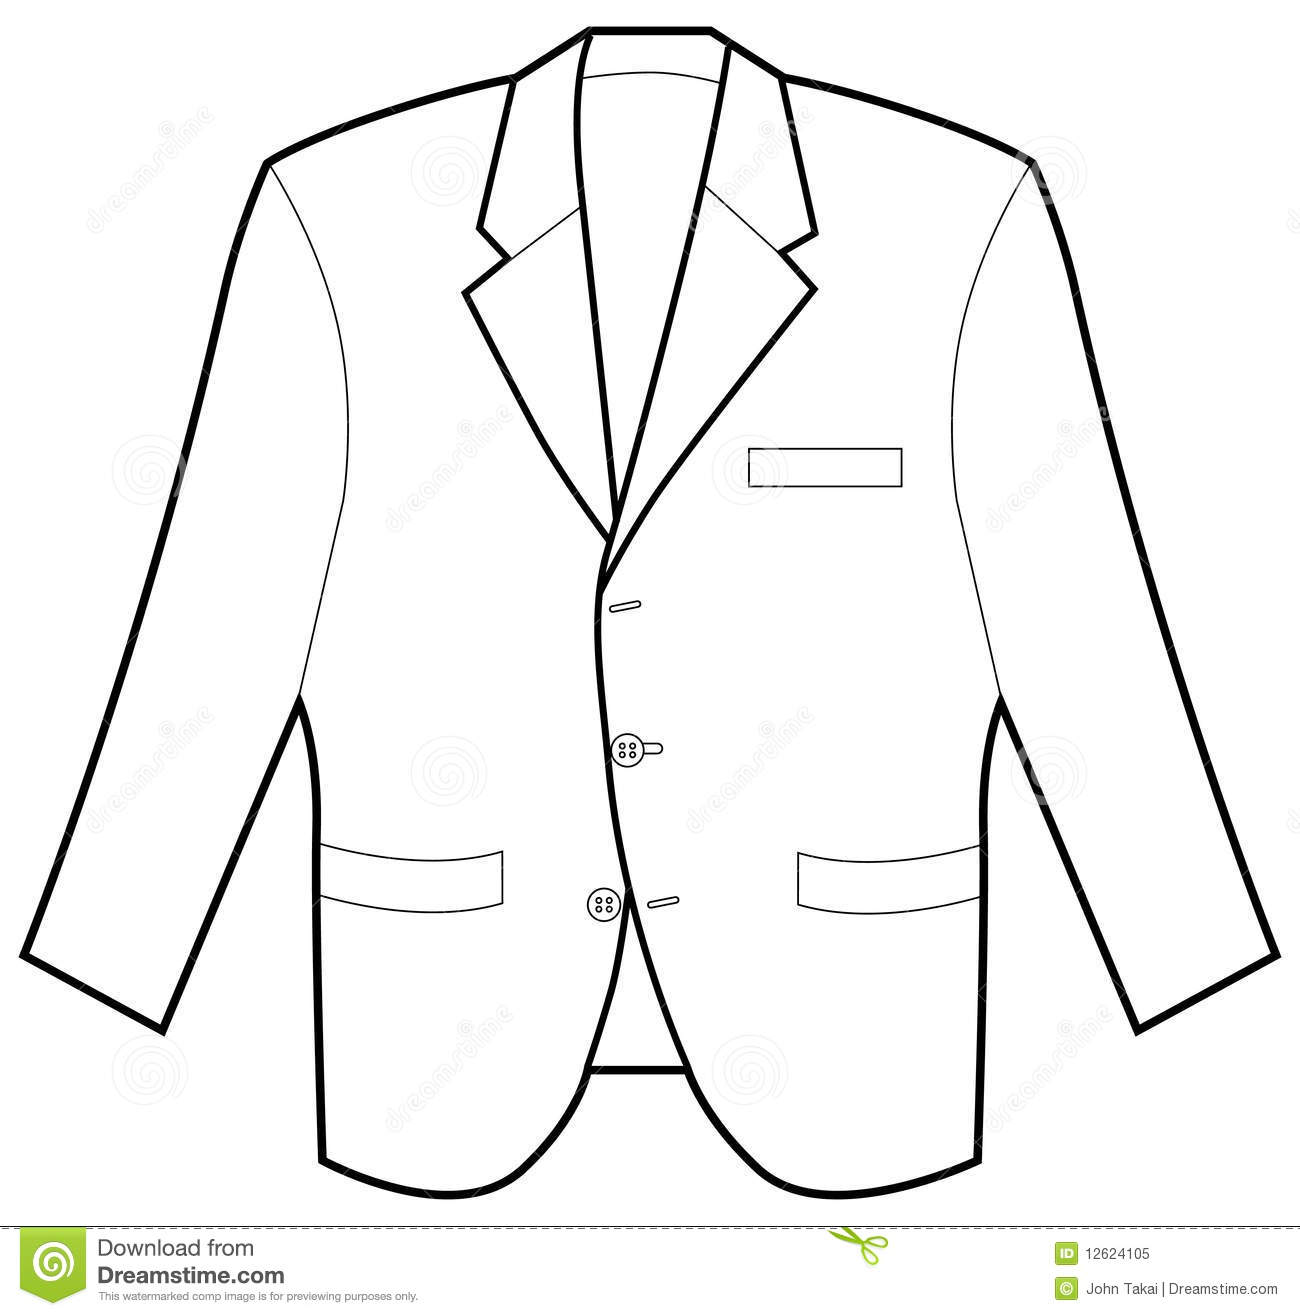 Suit black and white clipart banner freeuse Free Suit Clipart Black And White, Download Free Clip Art ... banner freeuse